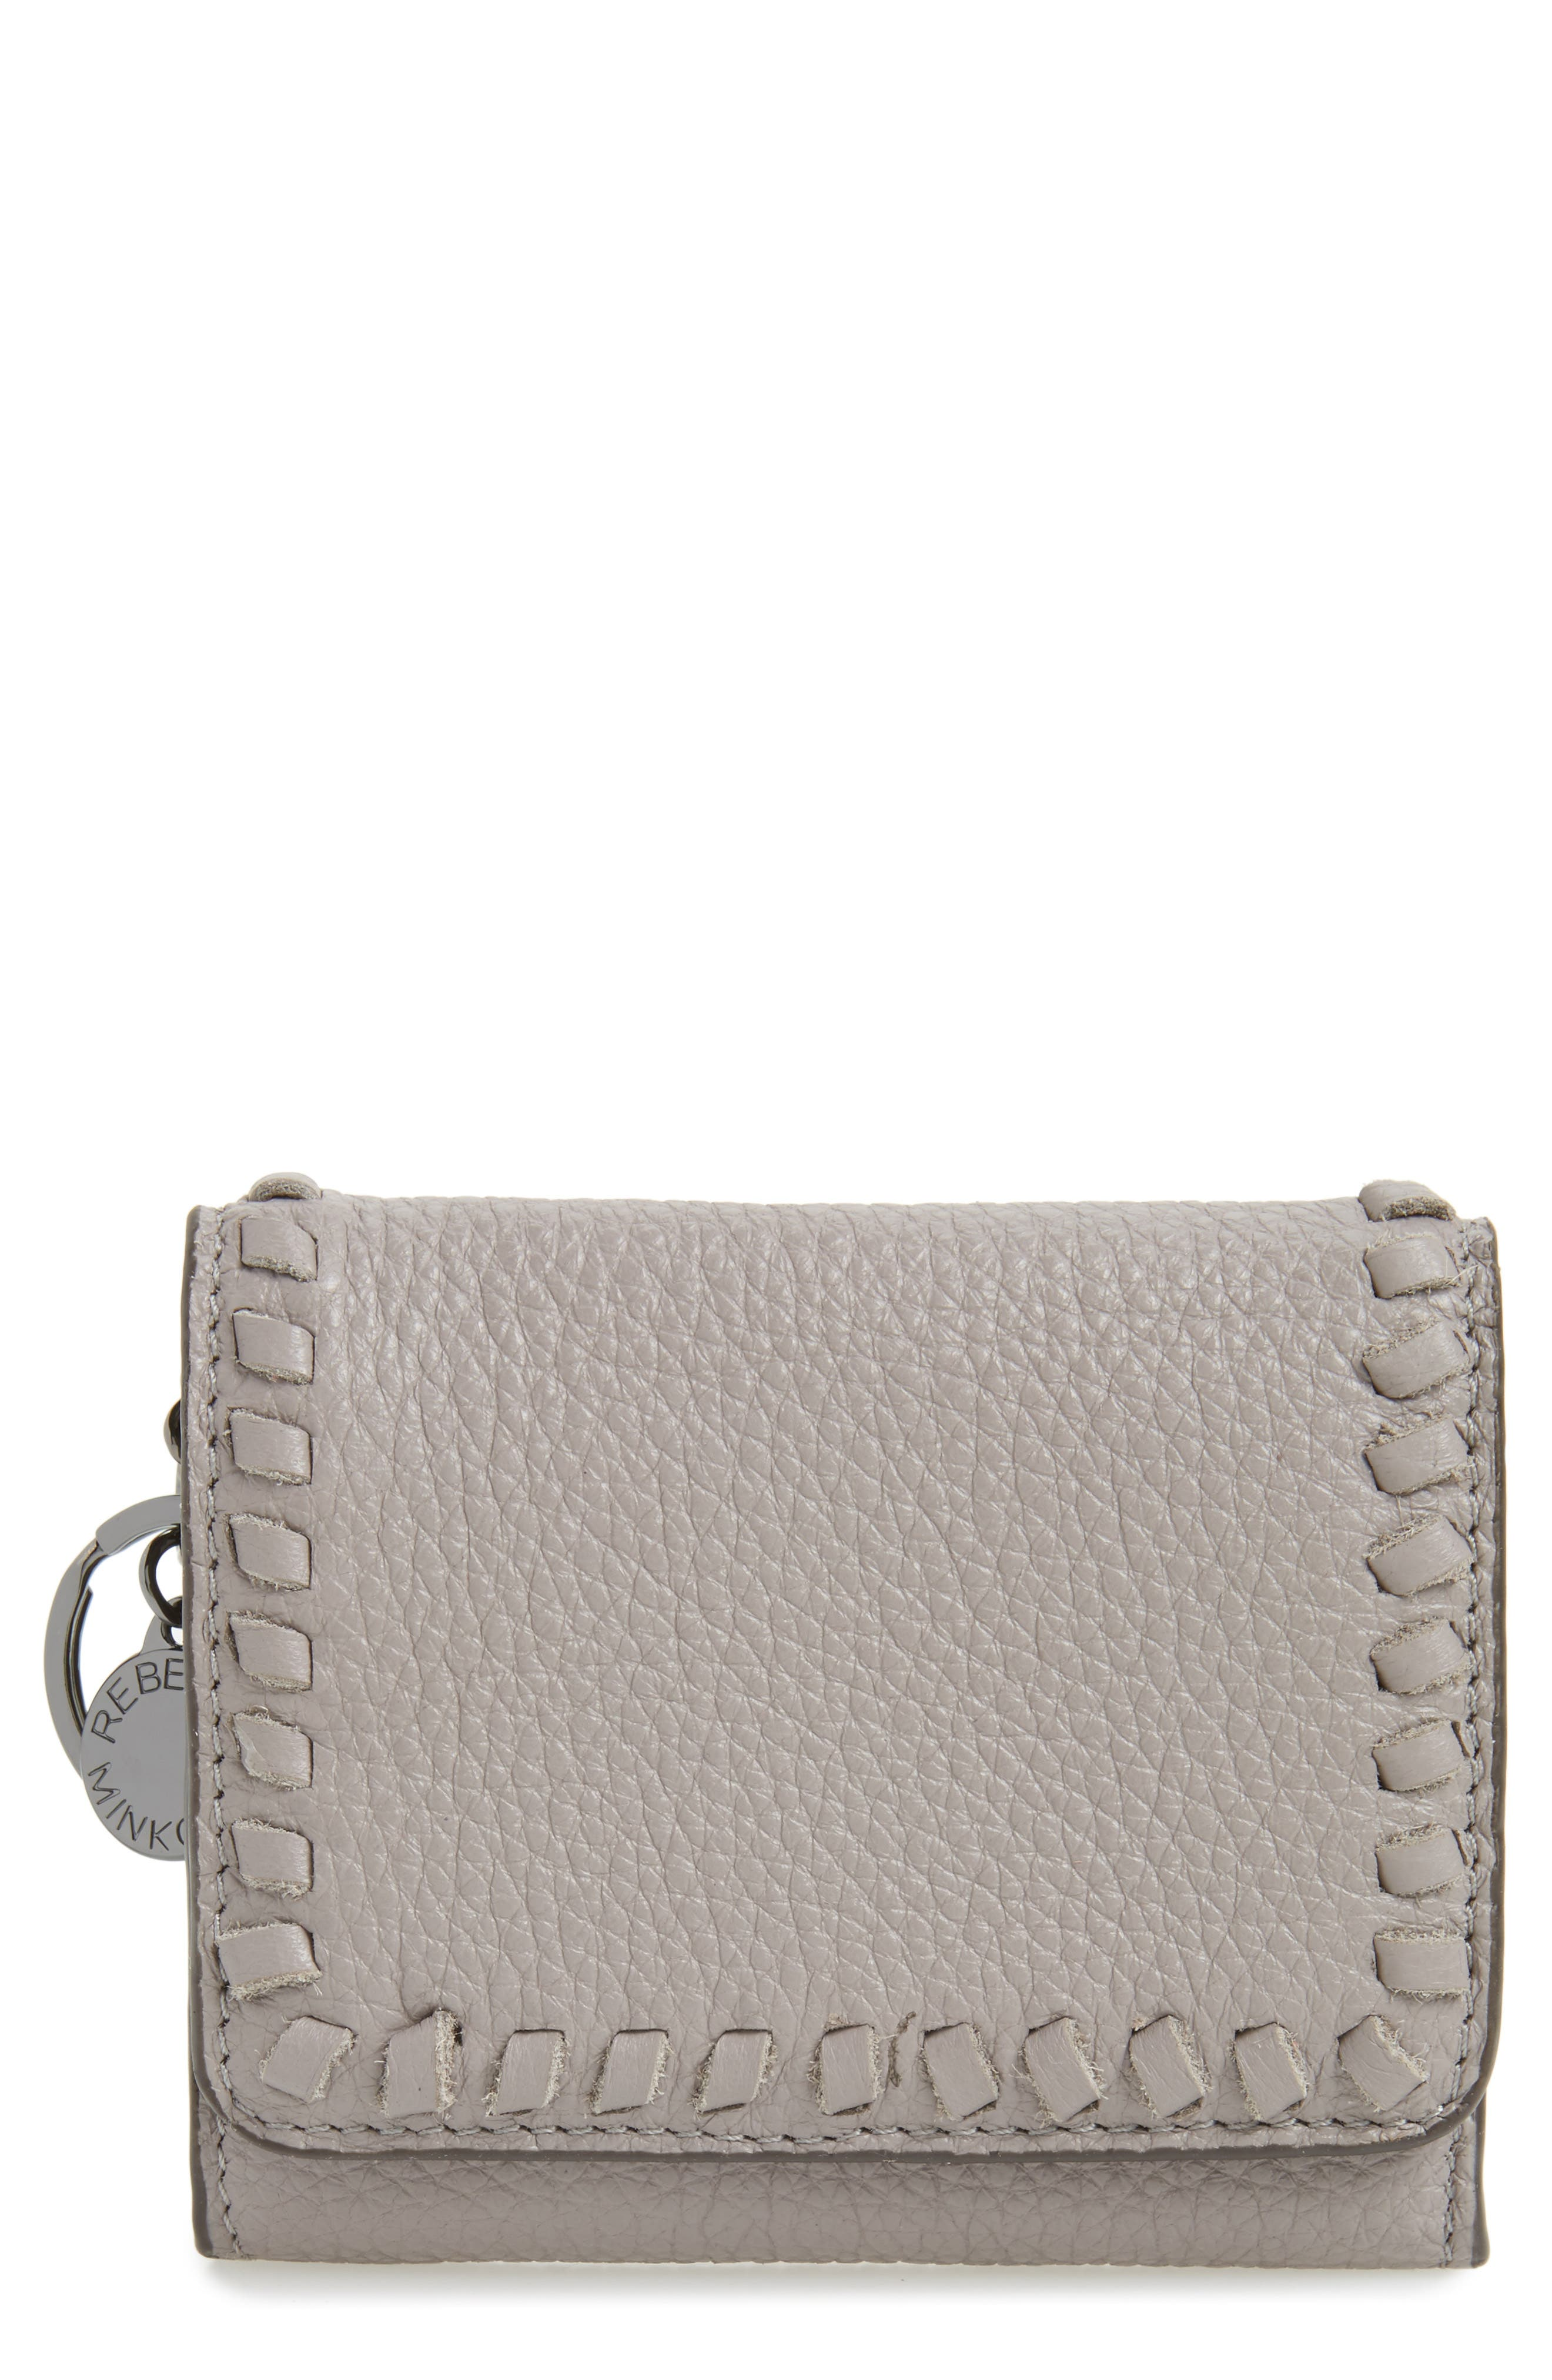 Main Image - Rebecca Minkoff Mini Vanity Leather Wallet